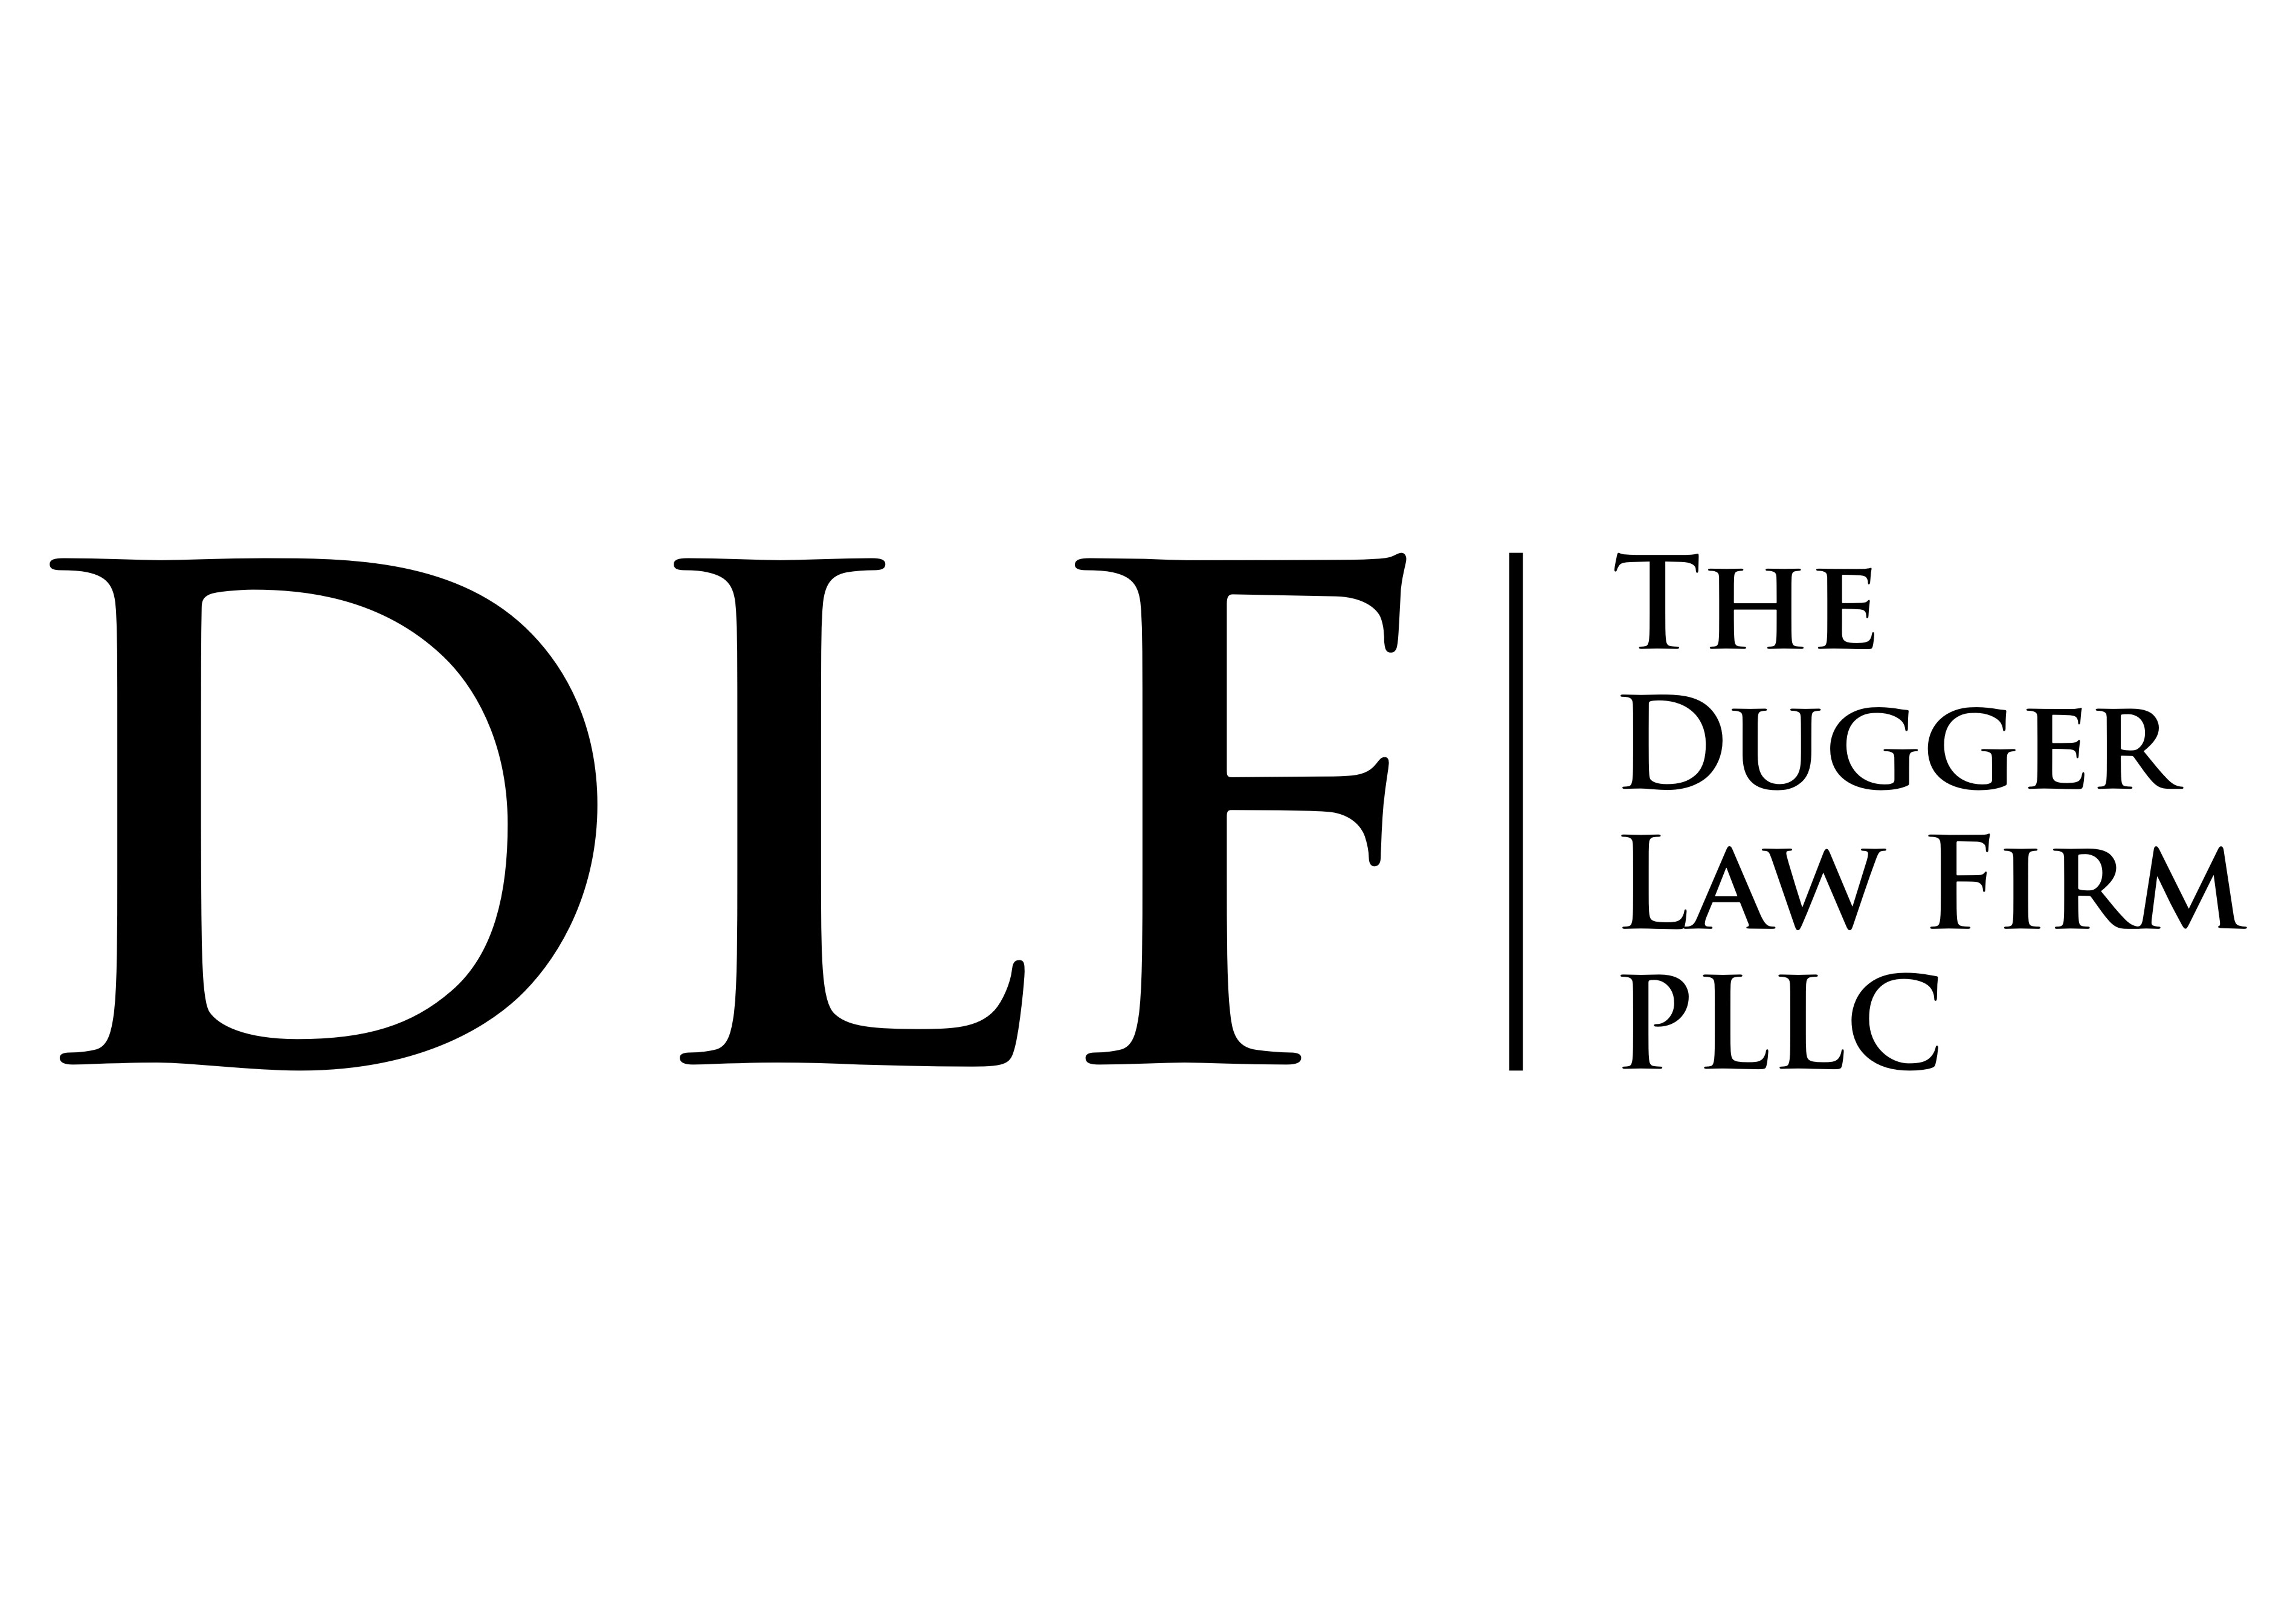 photo of The Dugger Law Firm, PLLC